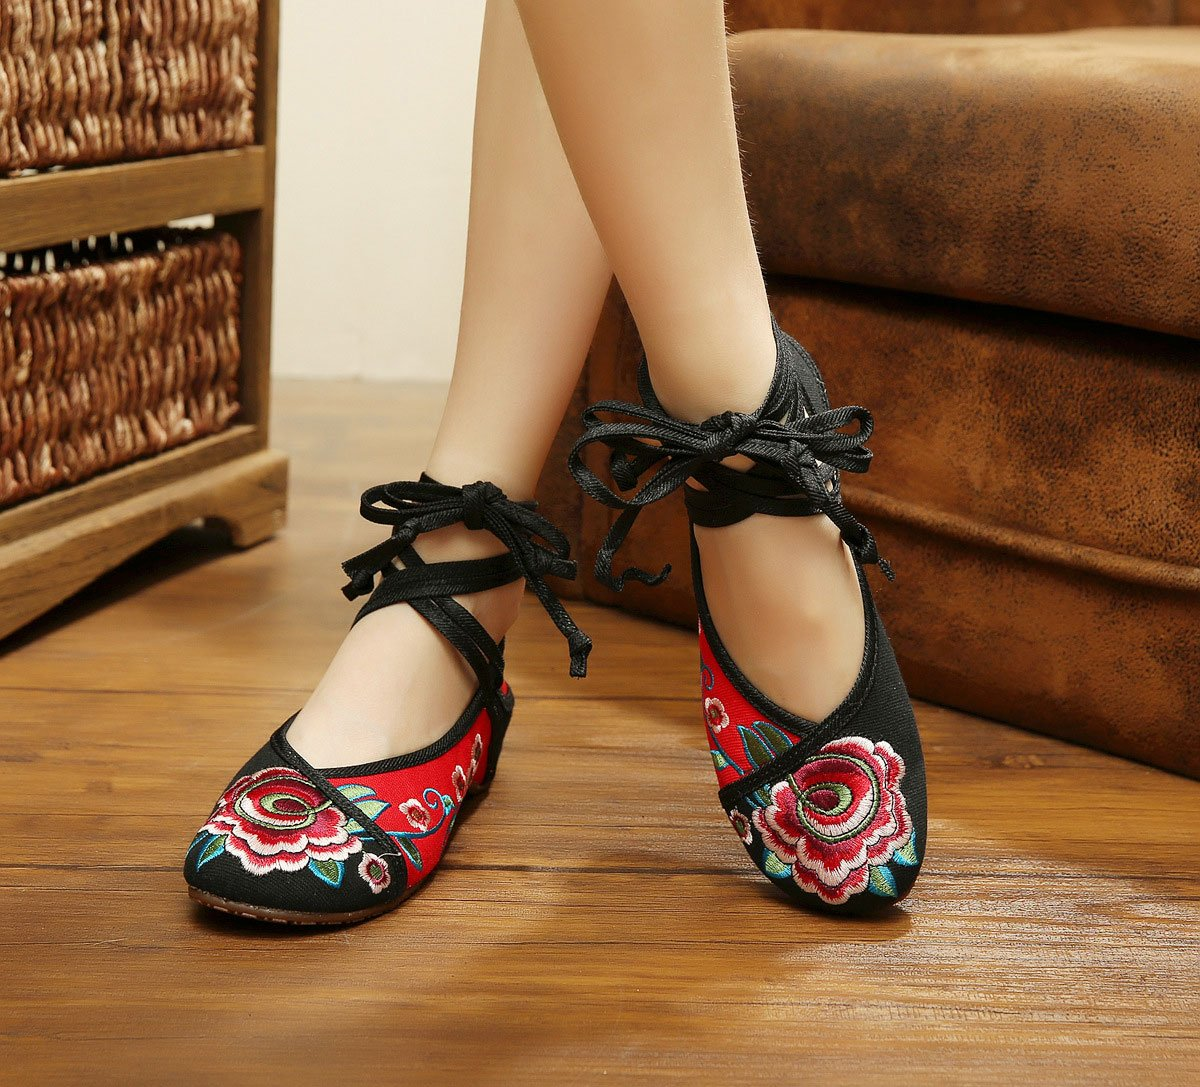 AvaCostume Women's Chinese Embroidery Strappy Multicolor Platform Dress Shoes Black 42 by AvaCostume (Image #2)